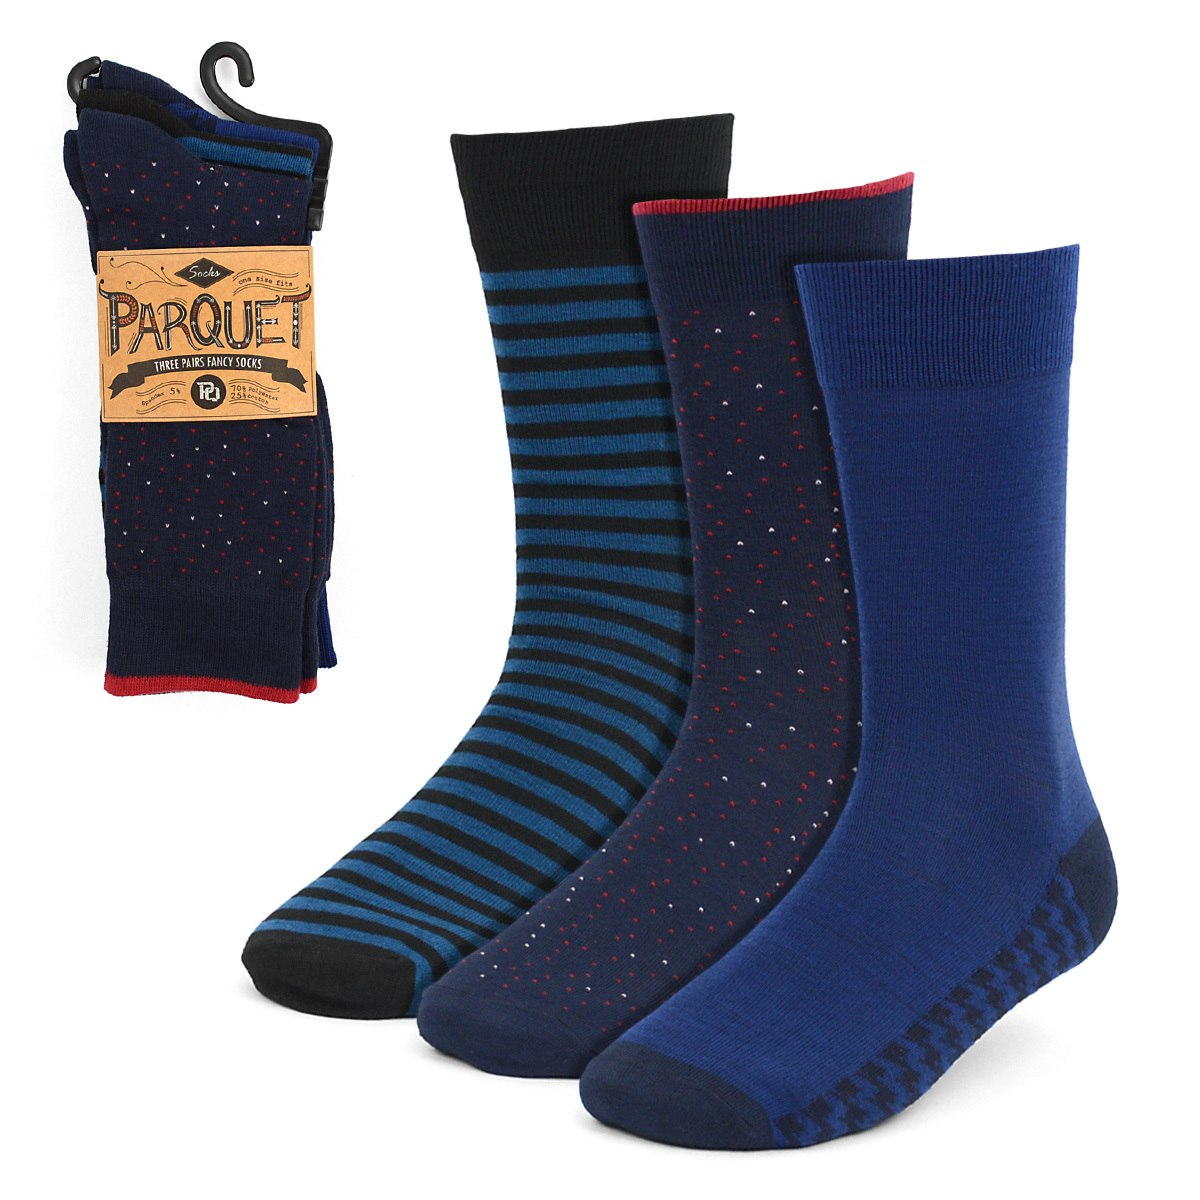 Dress Socks 3PKS-DRSY8 - Church Suits For Less